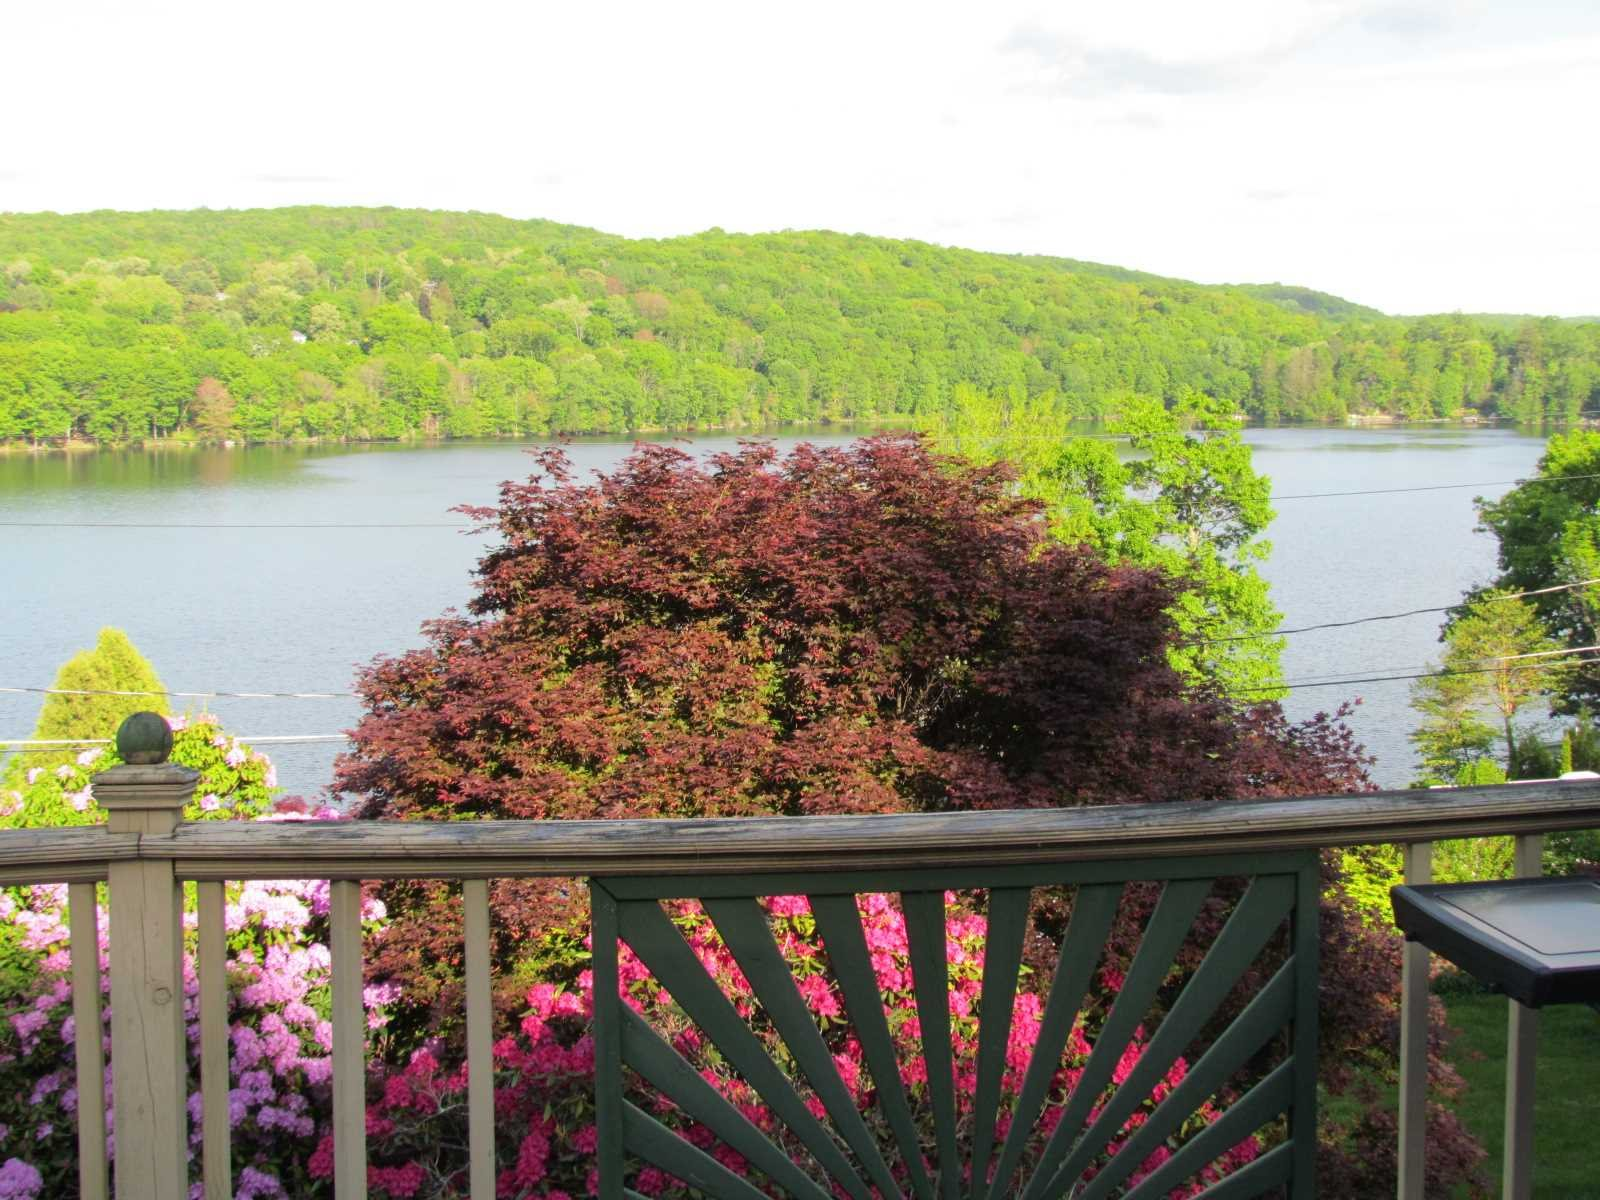 Single Family Home for Sale at 1394 ROUTE 292 1394 ROUTE 292 Pawling, New York 12531 United States